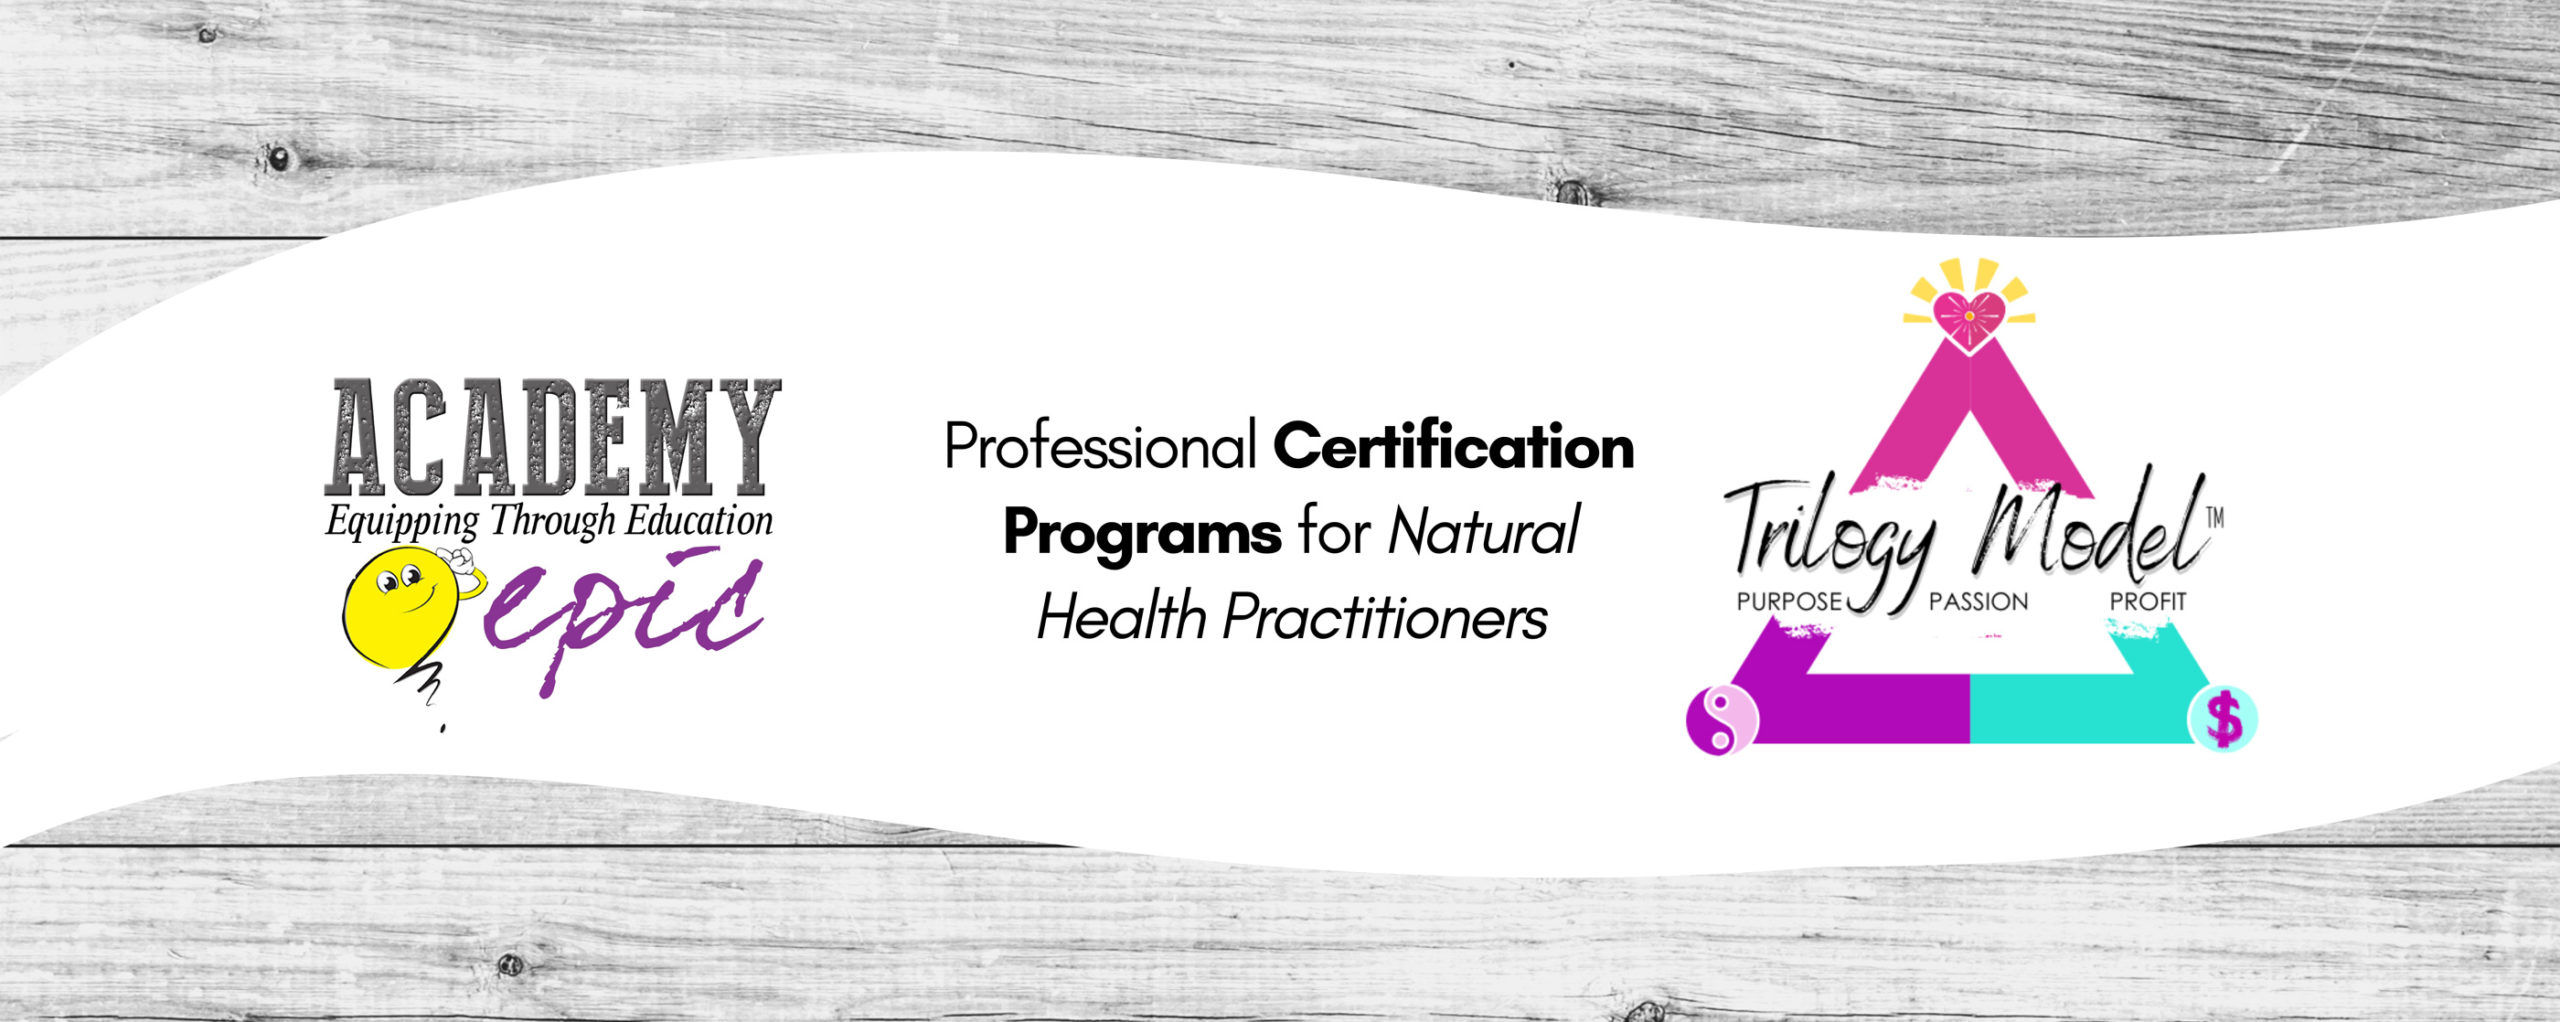 Academy Epic - Natural Health Courses